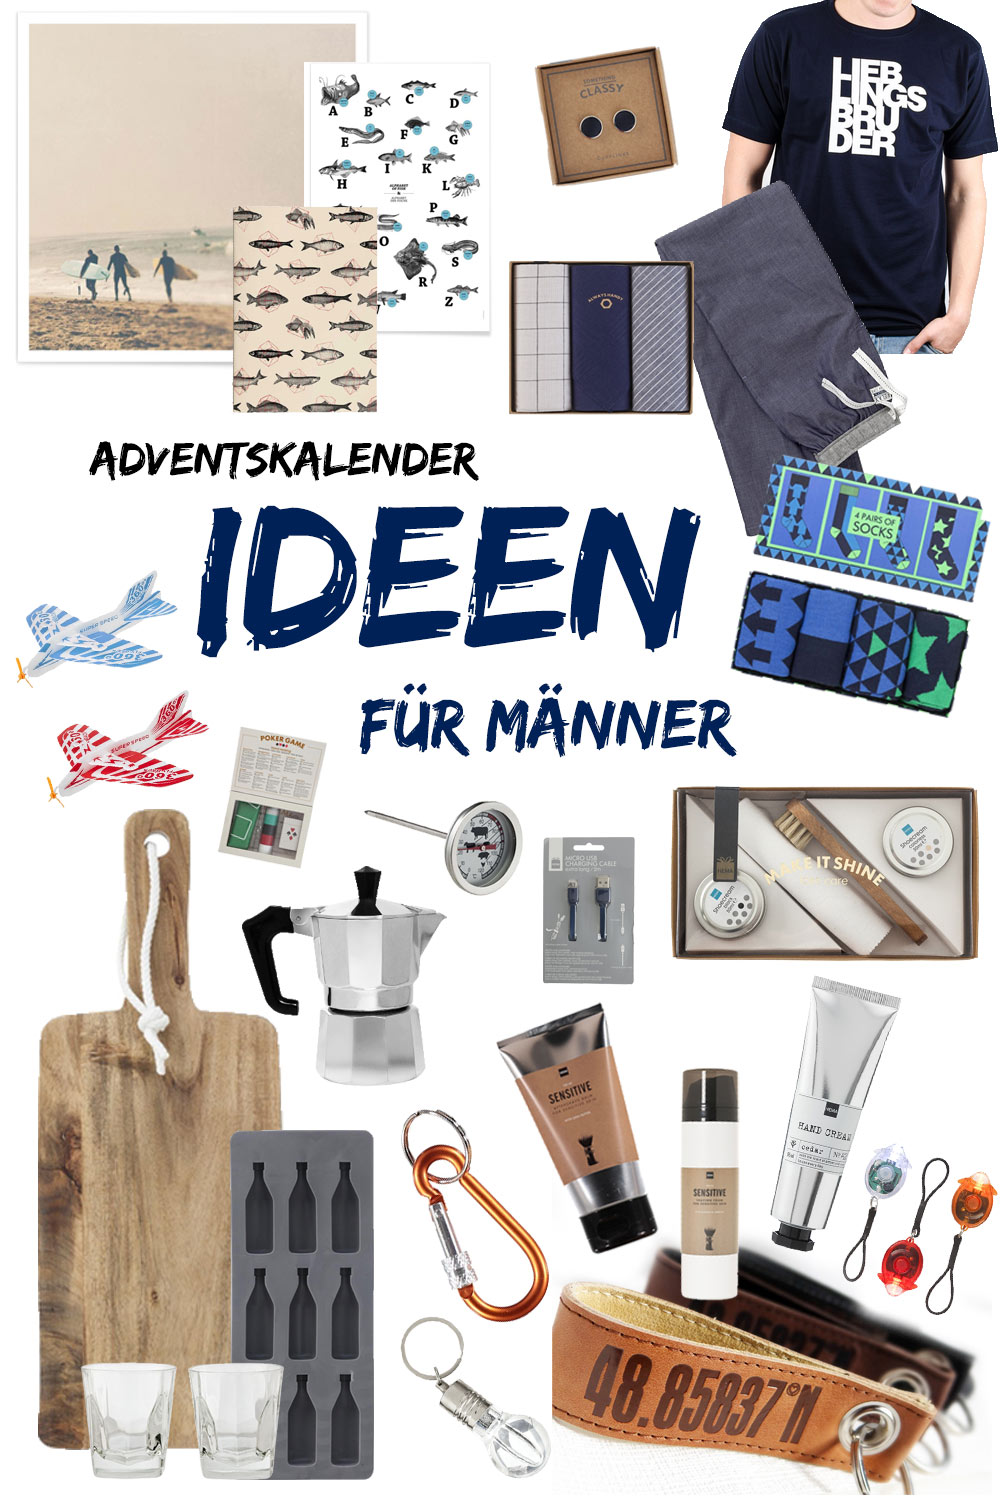 good tolles dekoration adventskalender manner ideen #1: Adventskalender Ideen für Männer